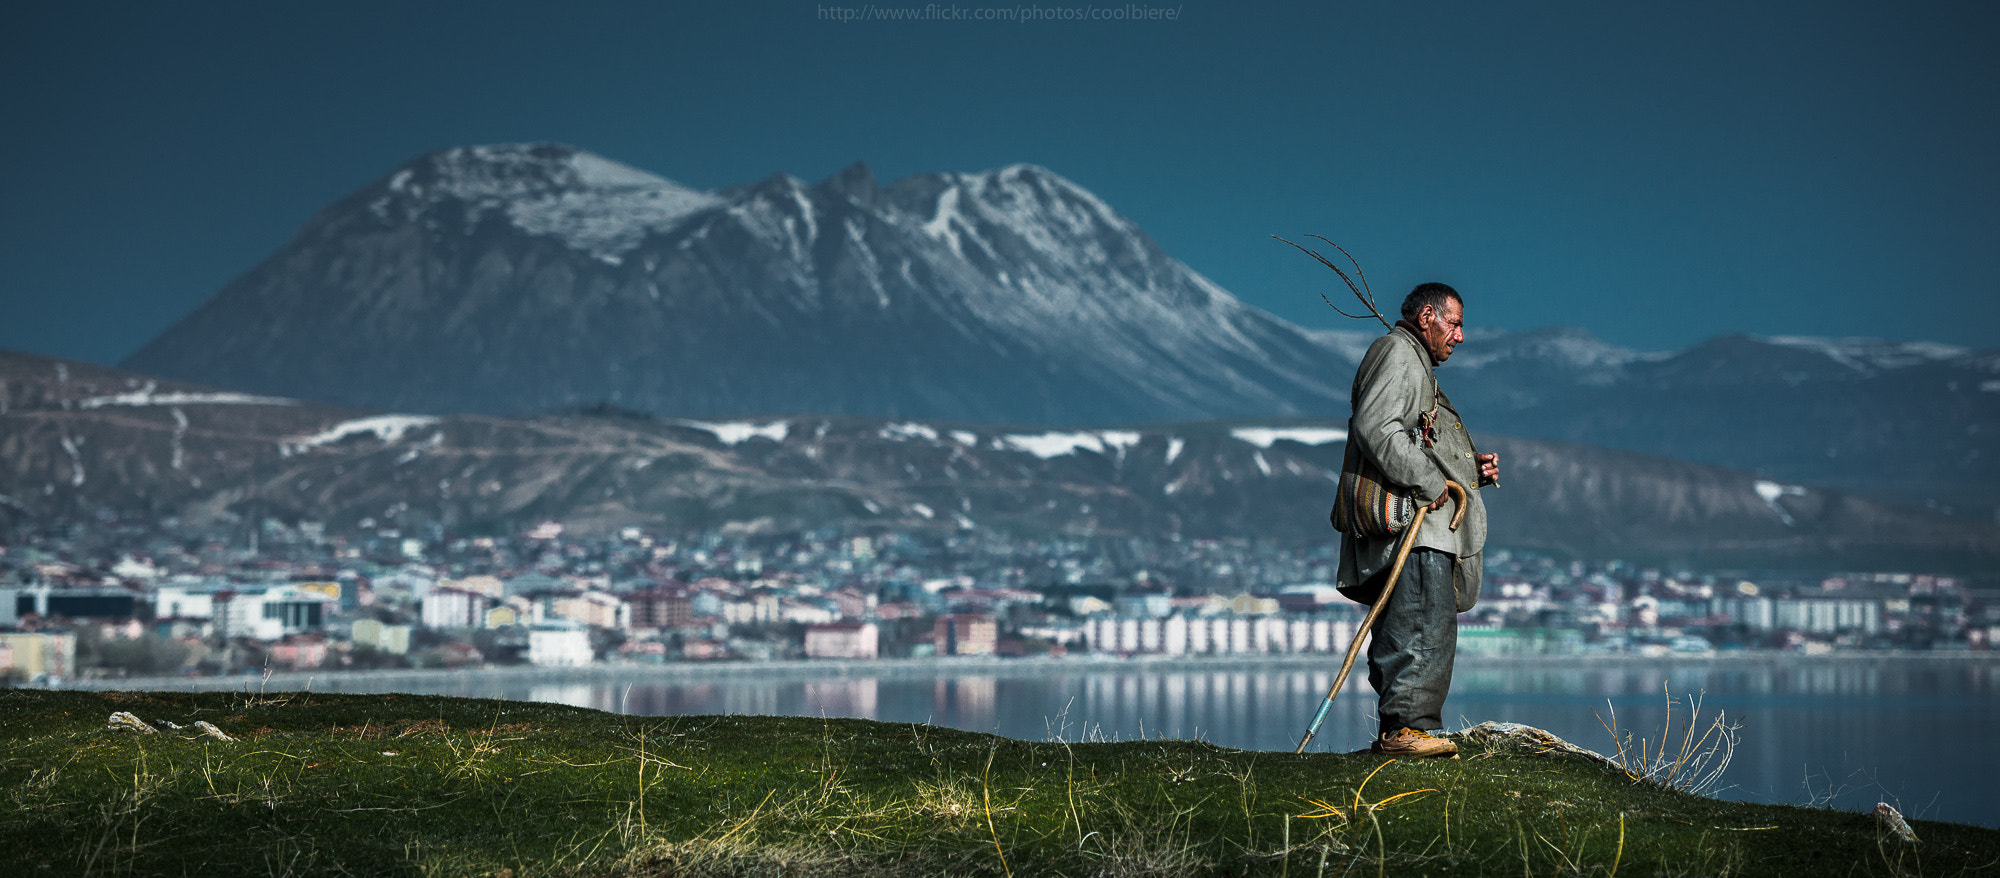 Photograph Turkish shepherd by Coolbiere. A. on 500px